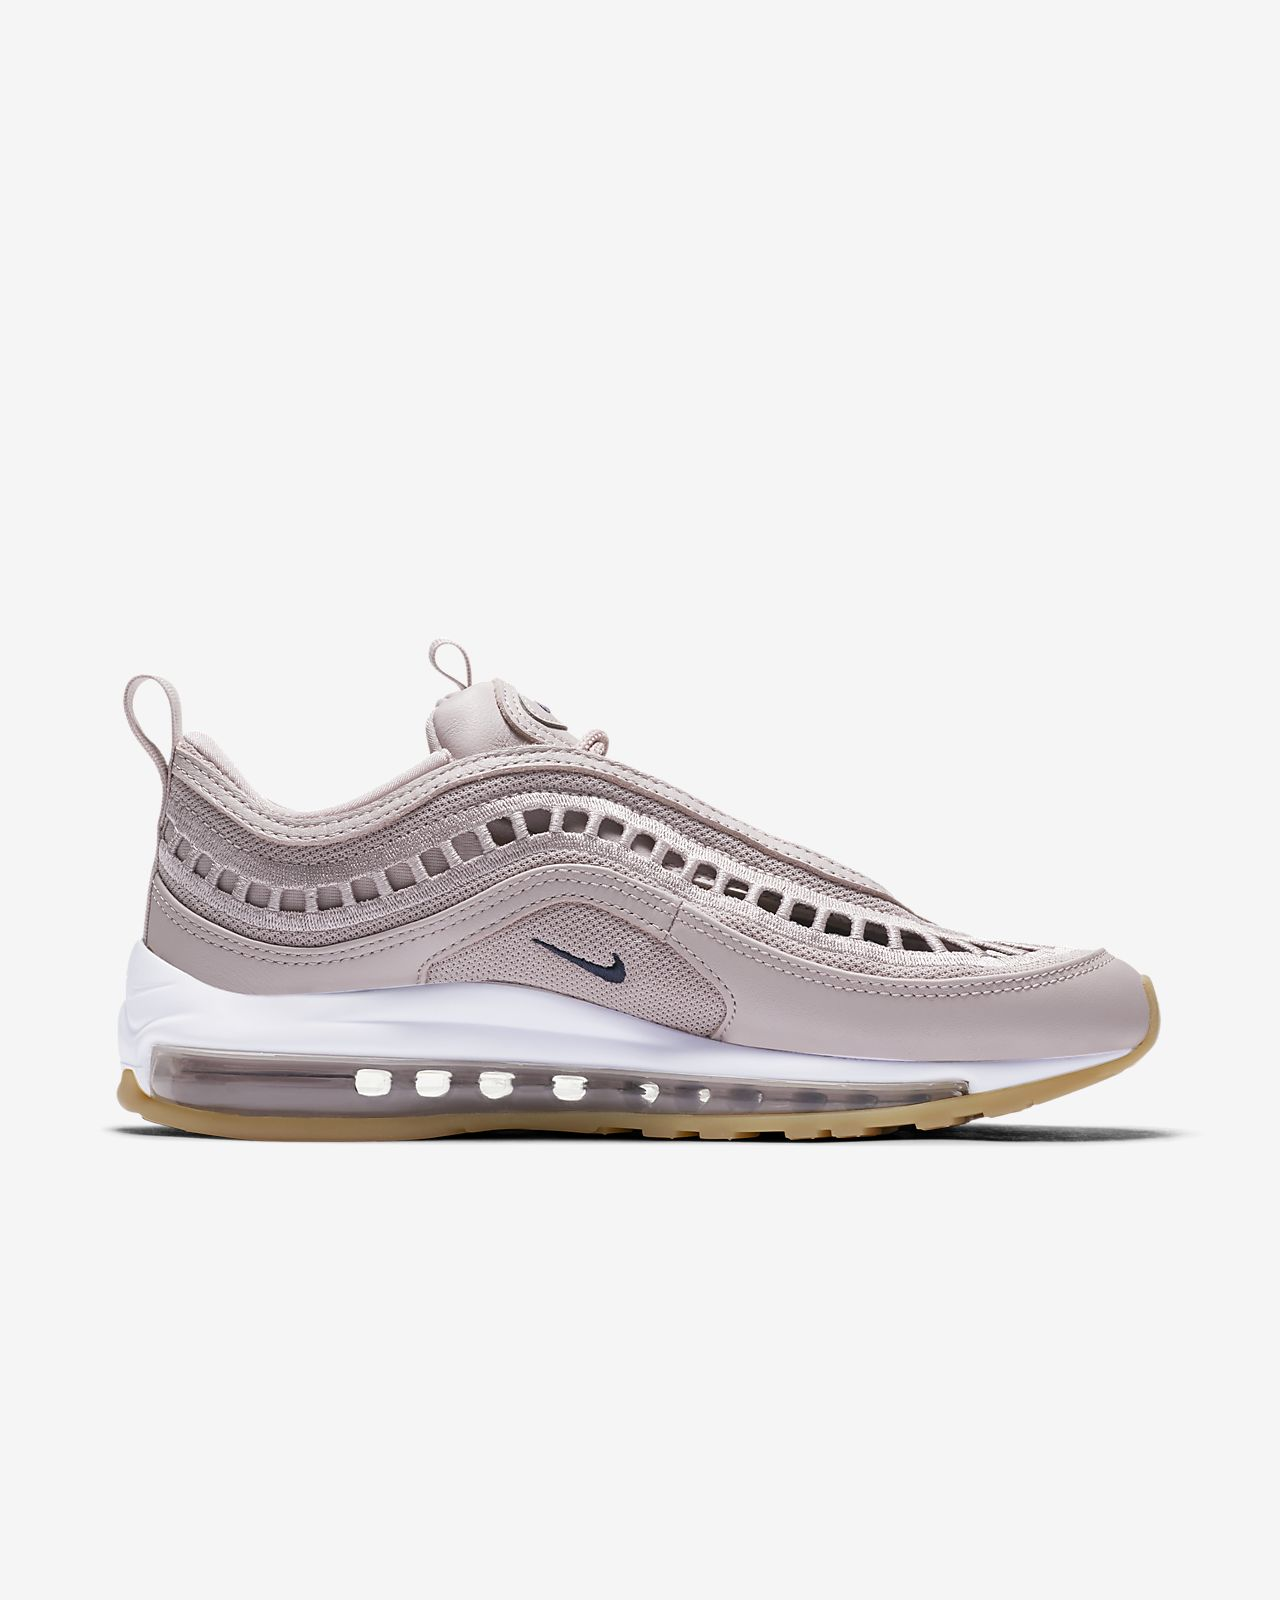 Nike Air Max 97 Ultra '17 SI Particle RoseSummit WhiteGum YellowNeutral Indigo, Lifestyle Donna